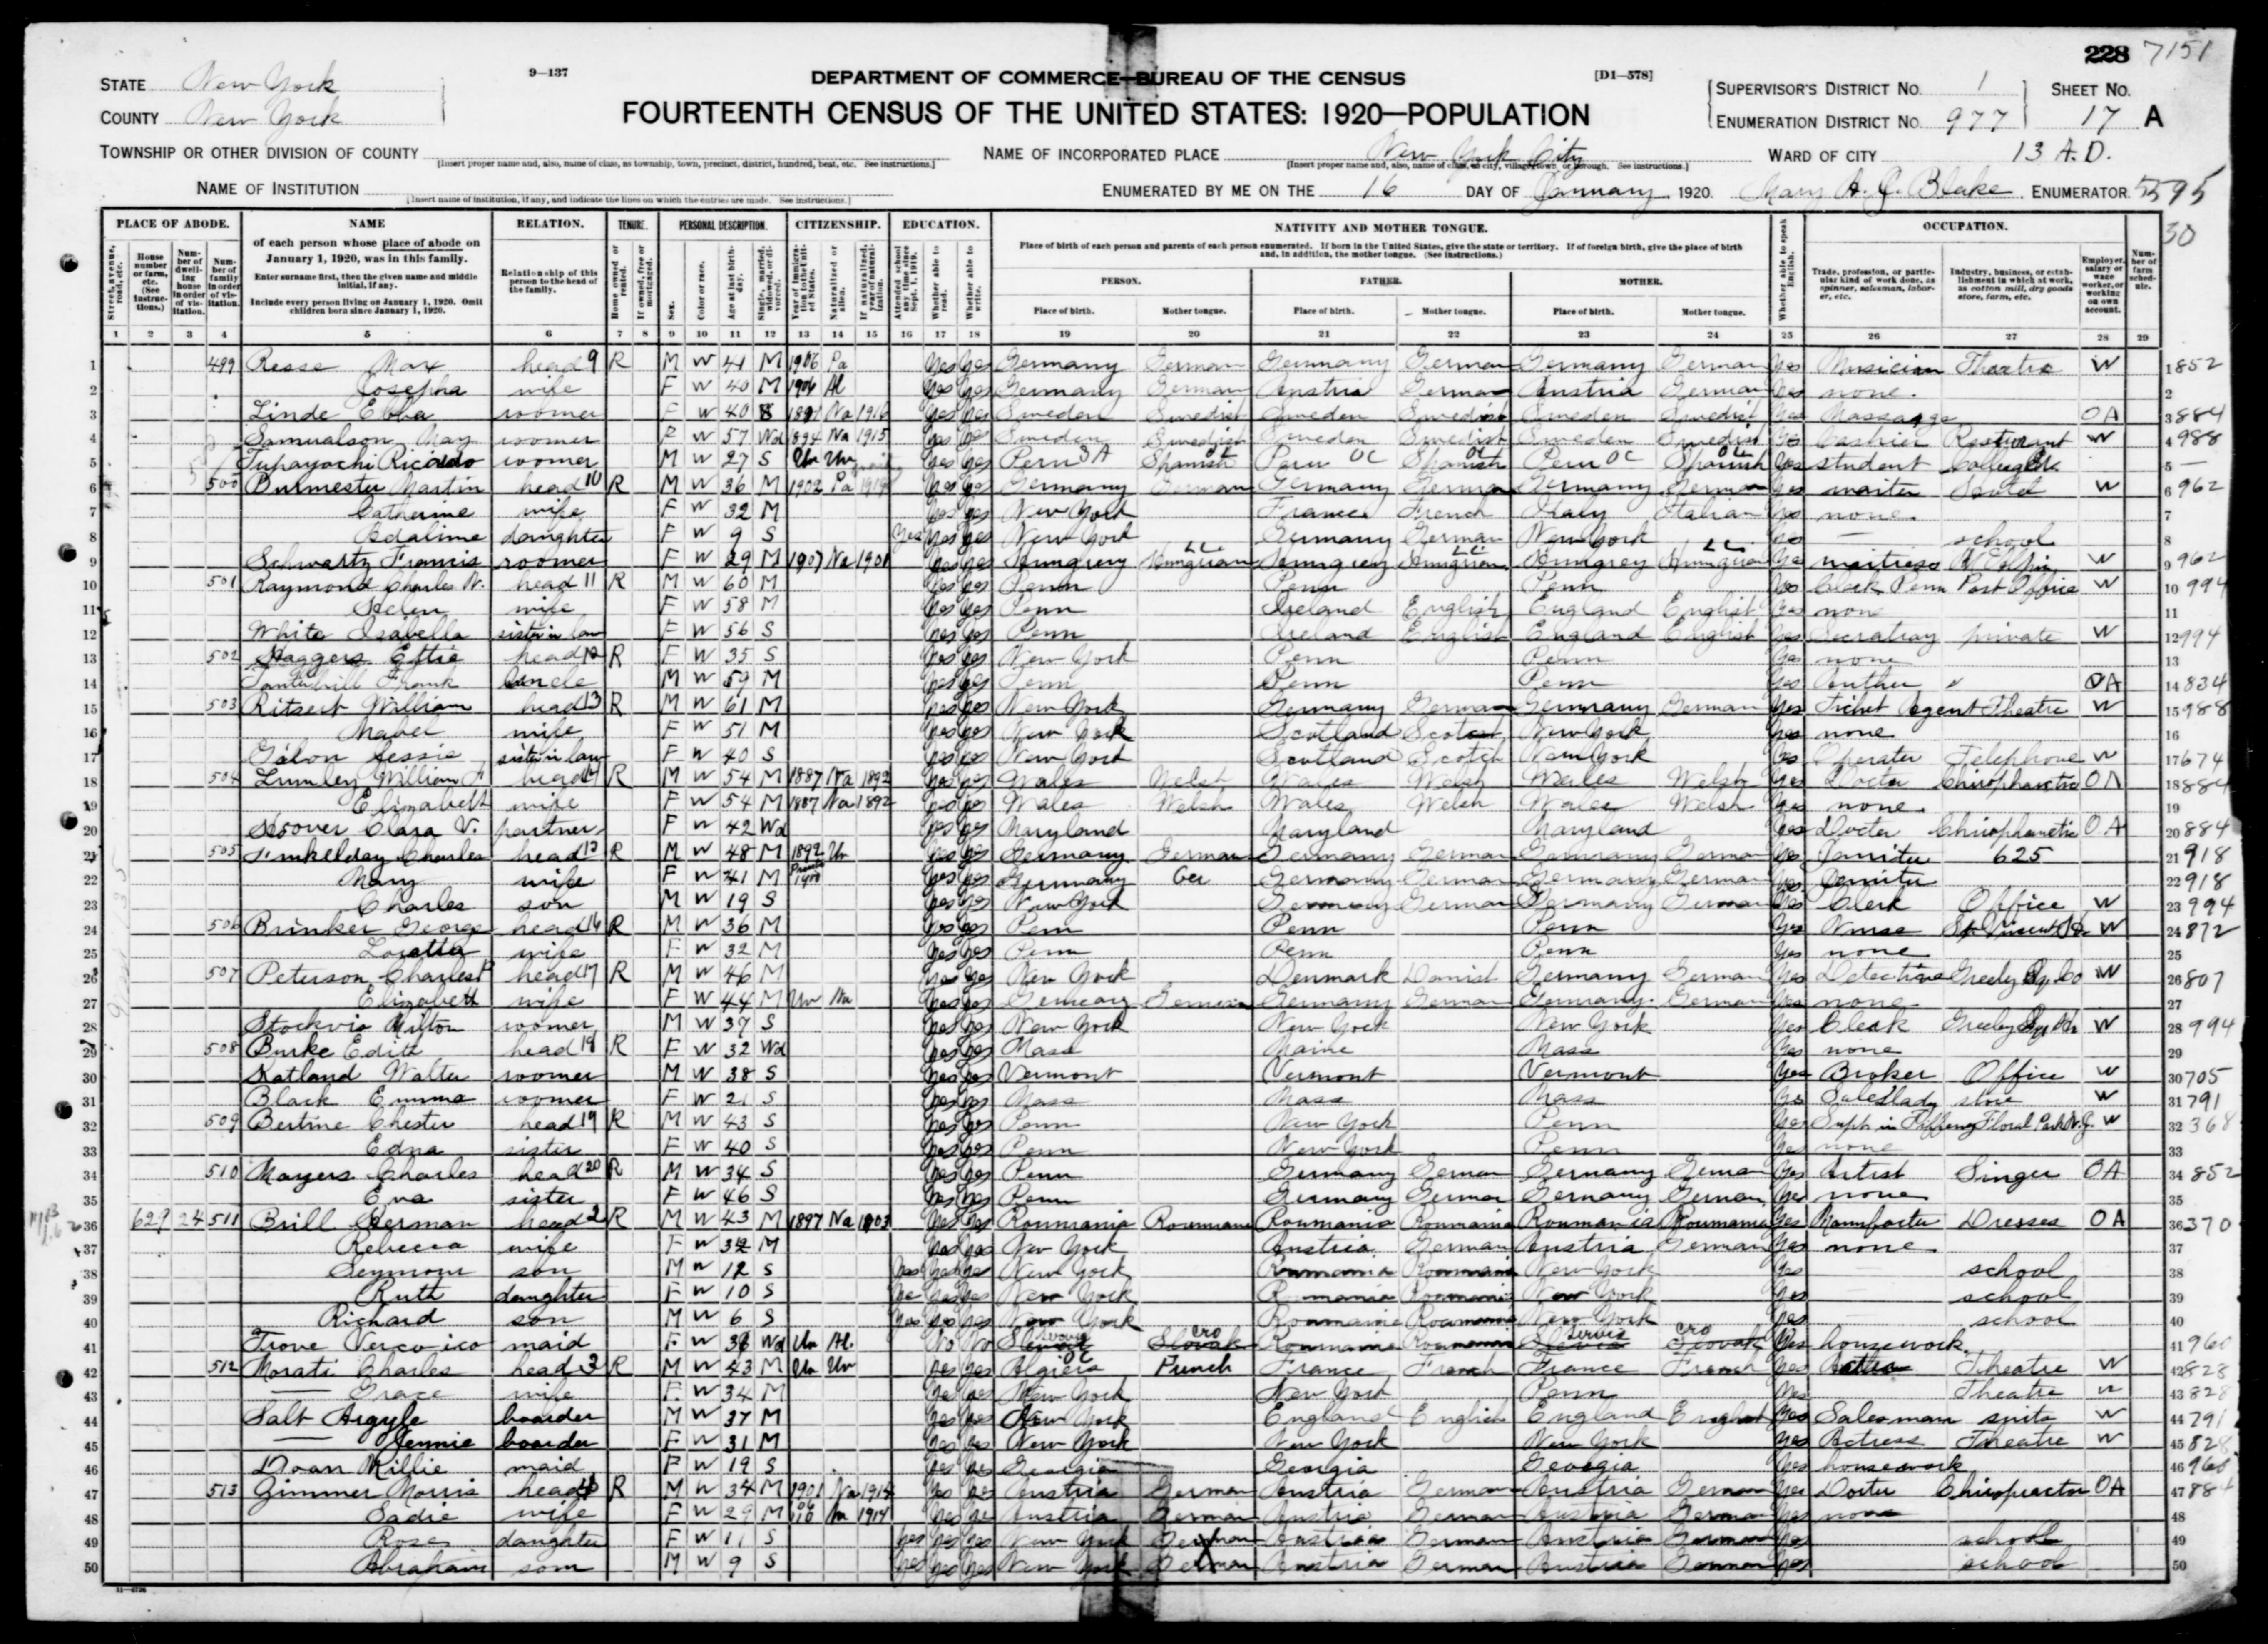 New York: NEW YORK County, Enumeration District 977, Sheet No. 17A